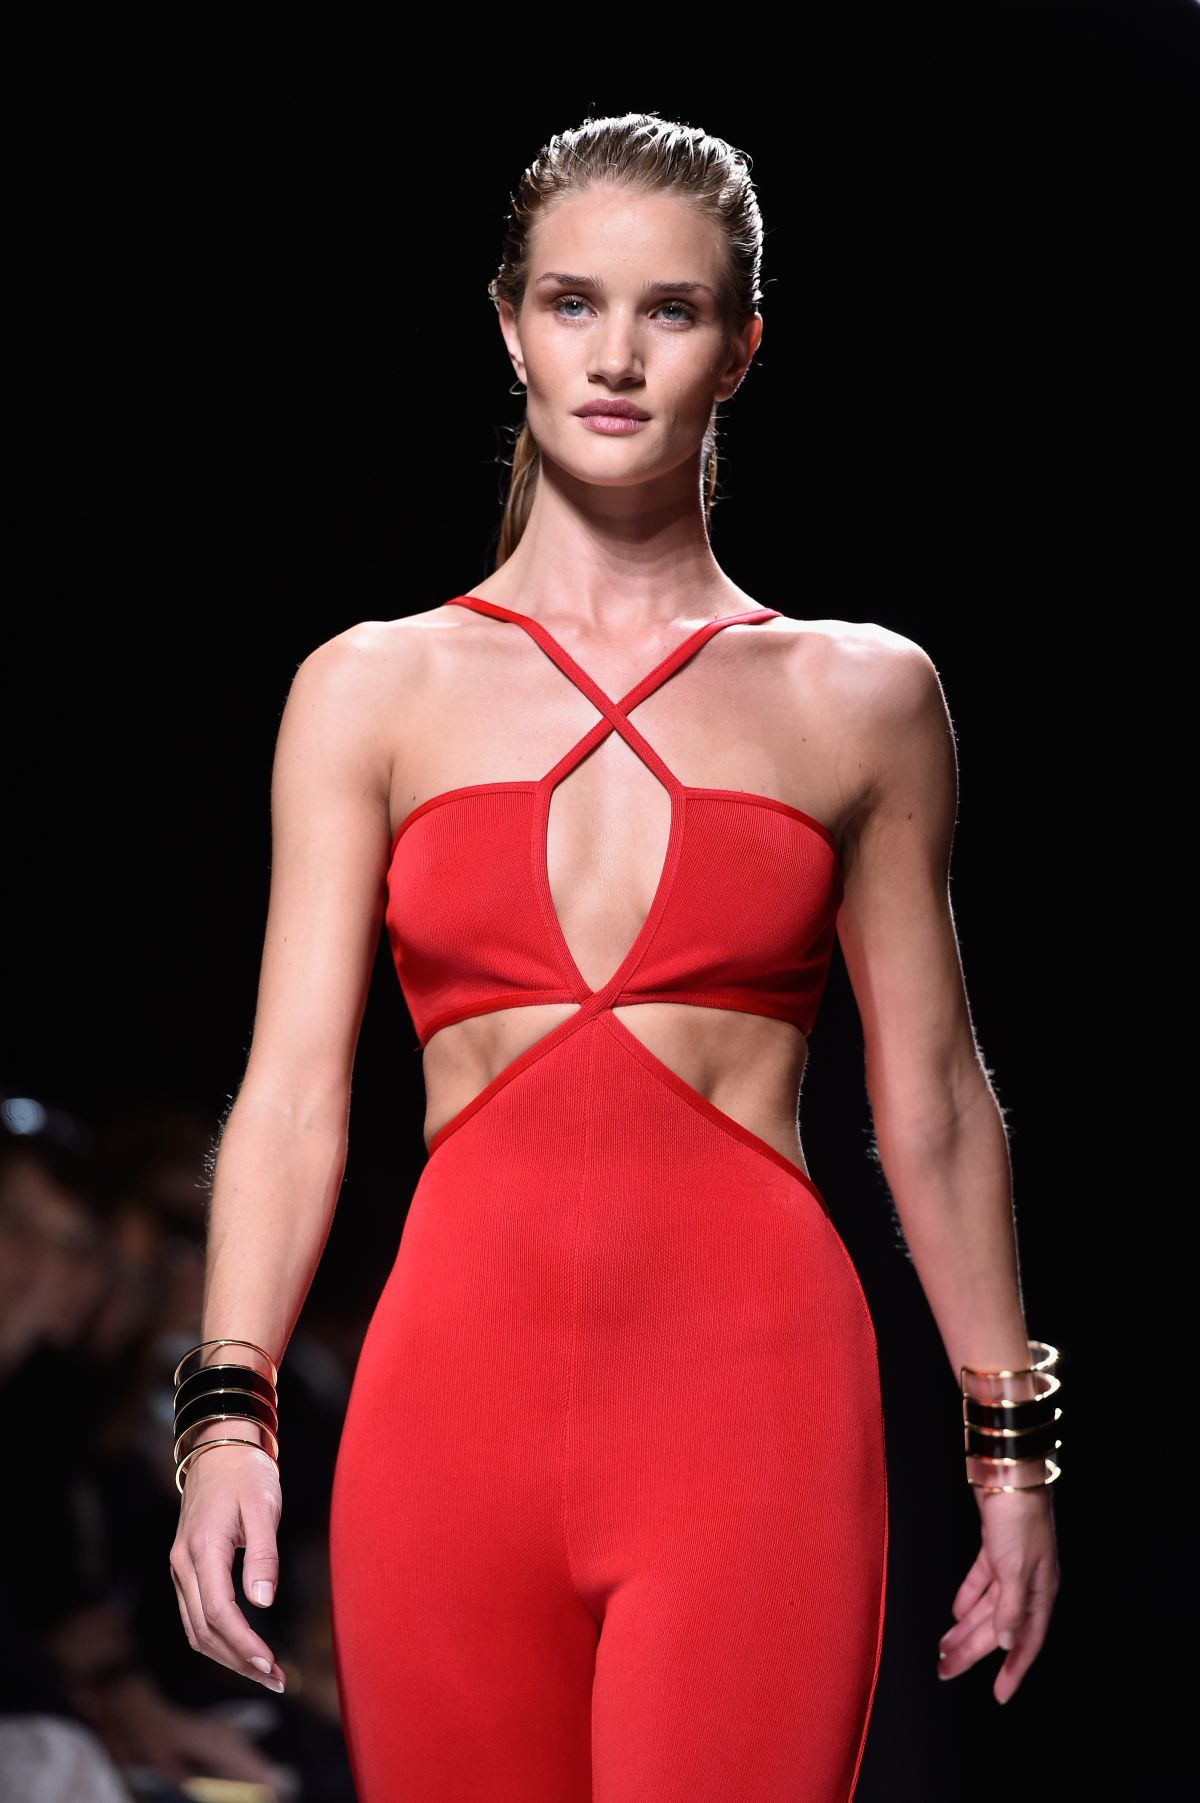 ROSIE HUNTINGTON-WHITELEY on the Runway of Balmain Fashion Show in Paris